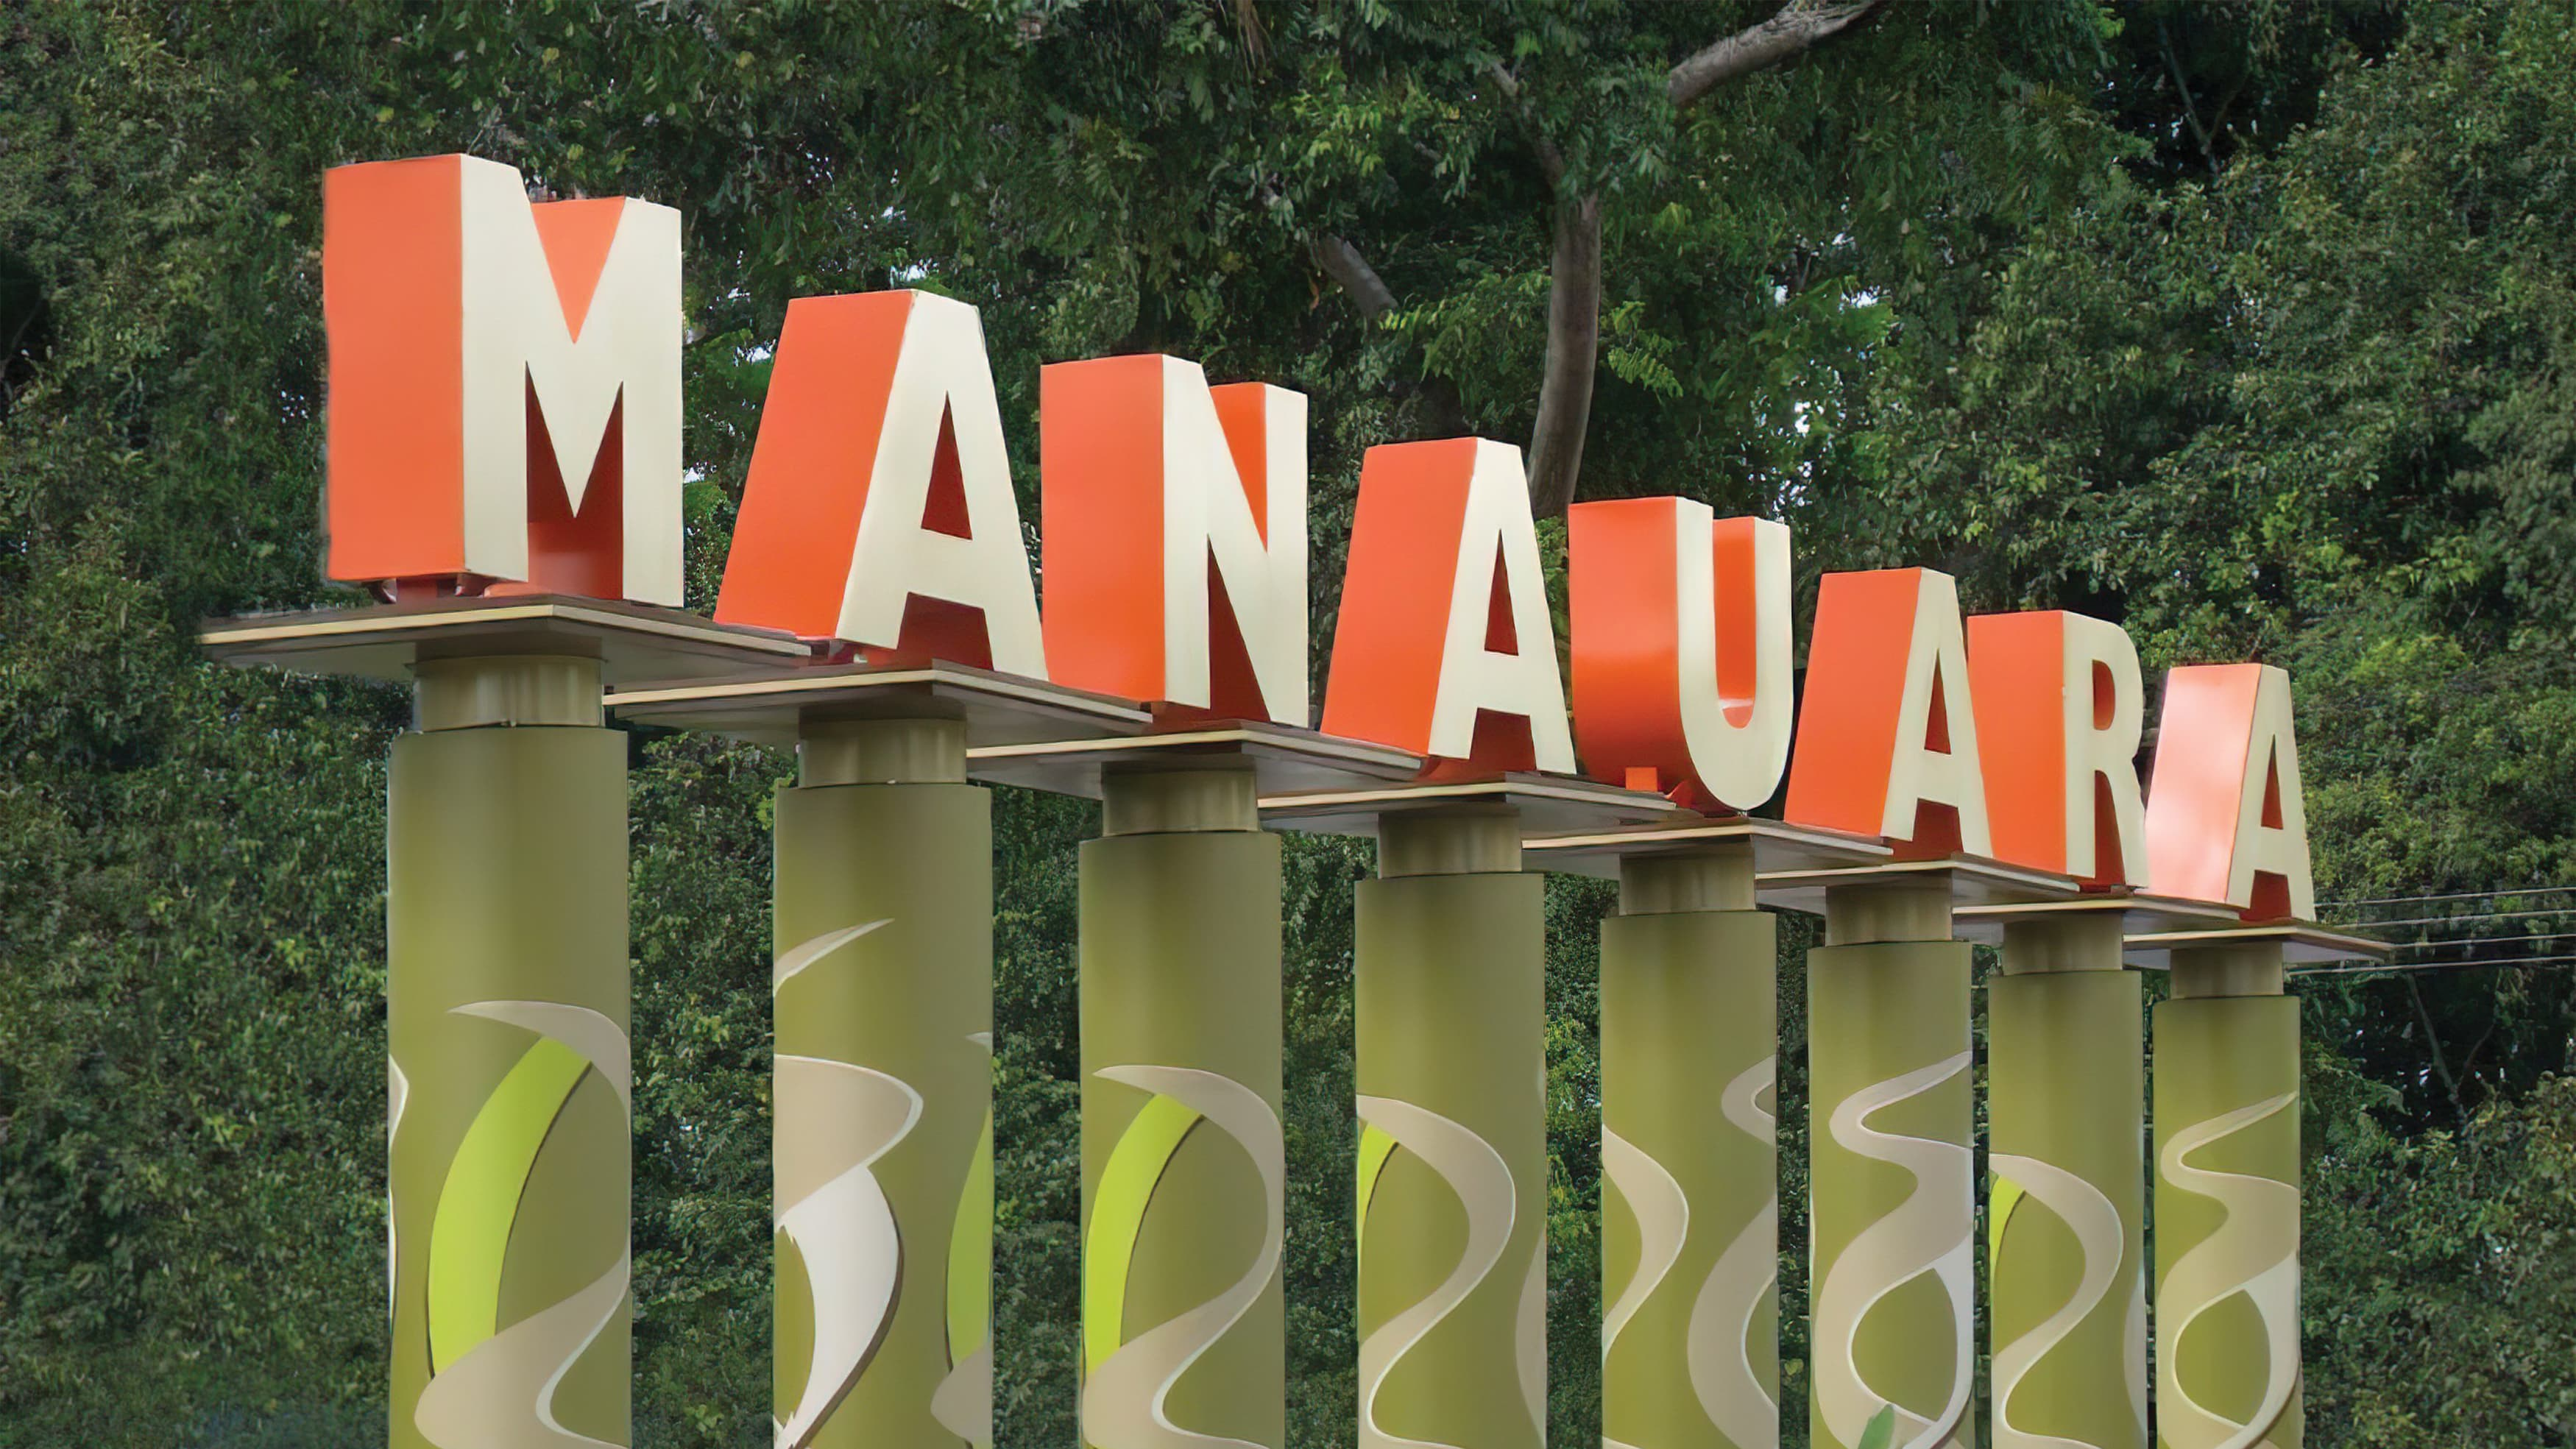 Manauara channel letters on individual pedestals integrated into landscape